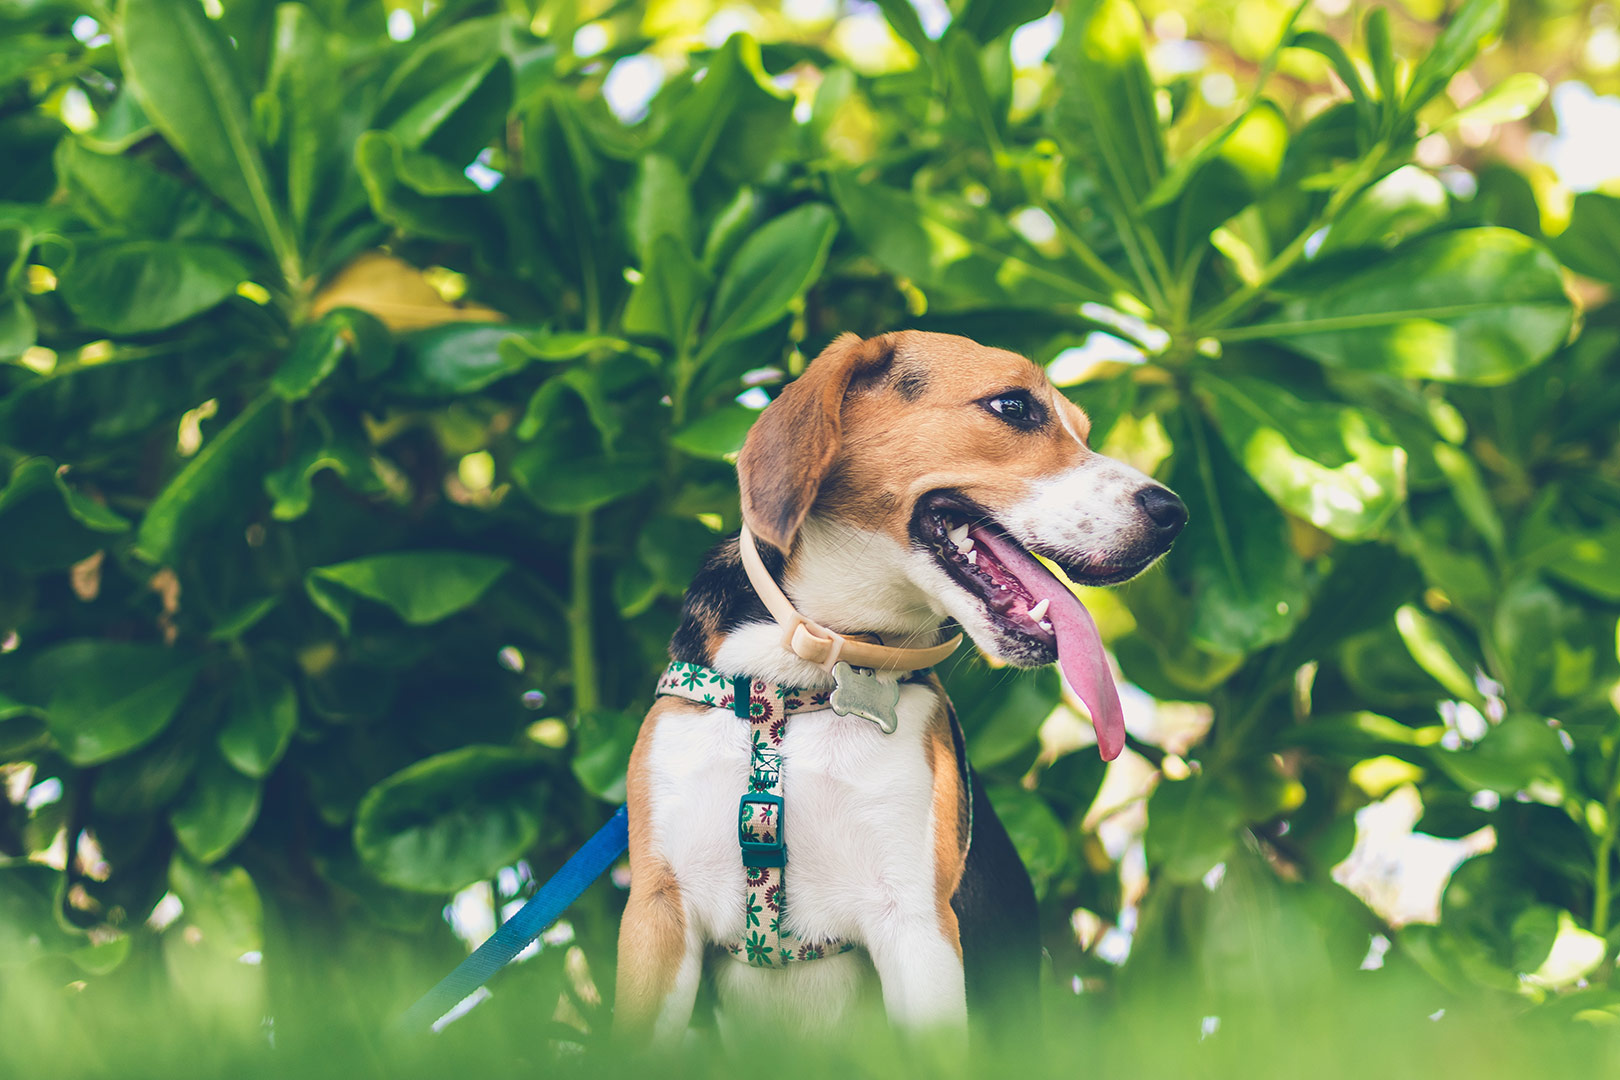 young beagle puppy with his tongue out in the garden sitting with a harness and lead on